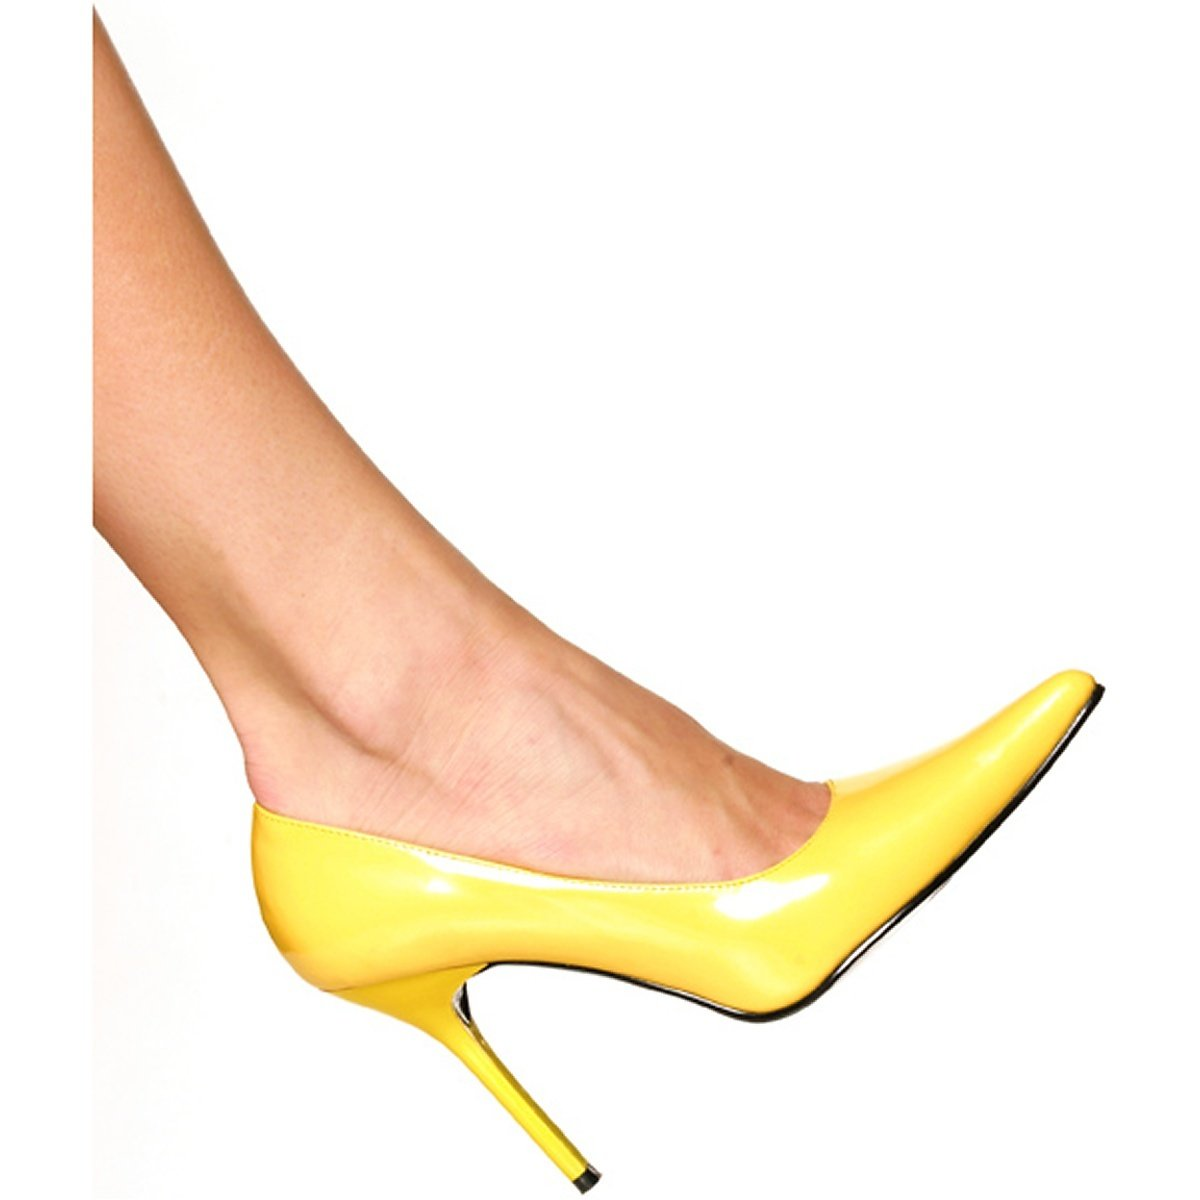 The Highest Heel Women's Classic Pump B000T88OLK 11 B(M) US|Yellow Patent Pu